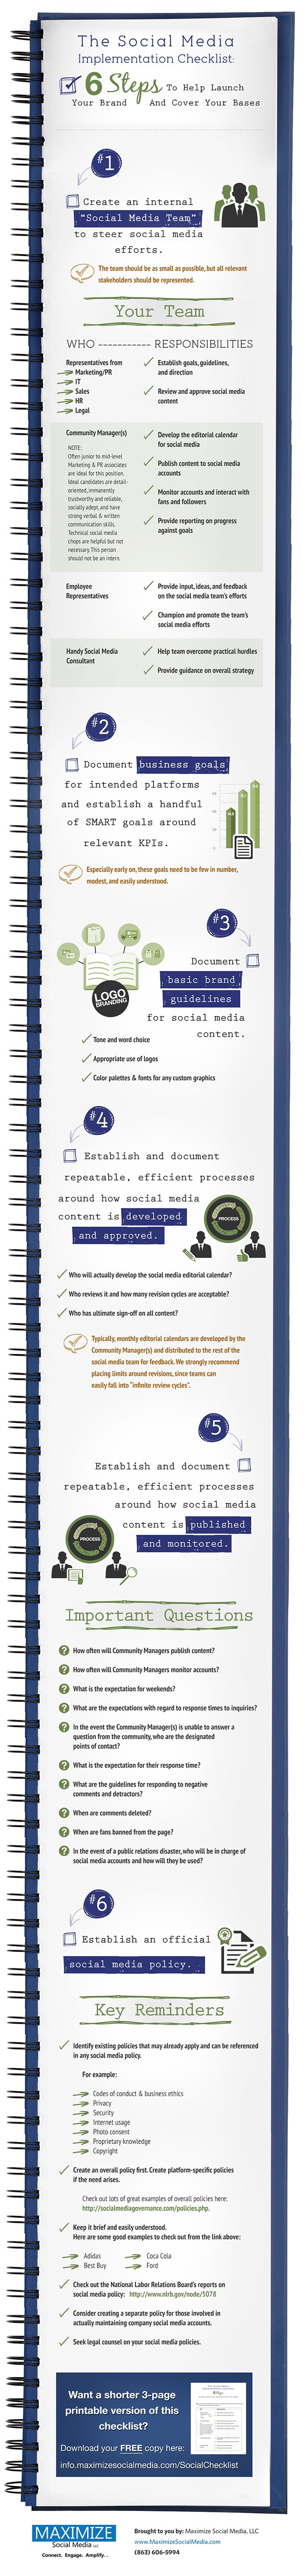 Social Media Implementation Checklist